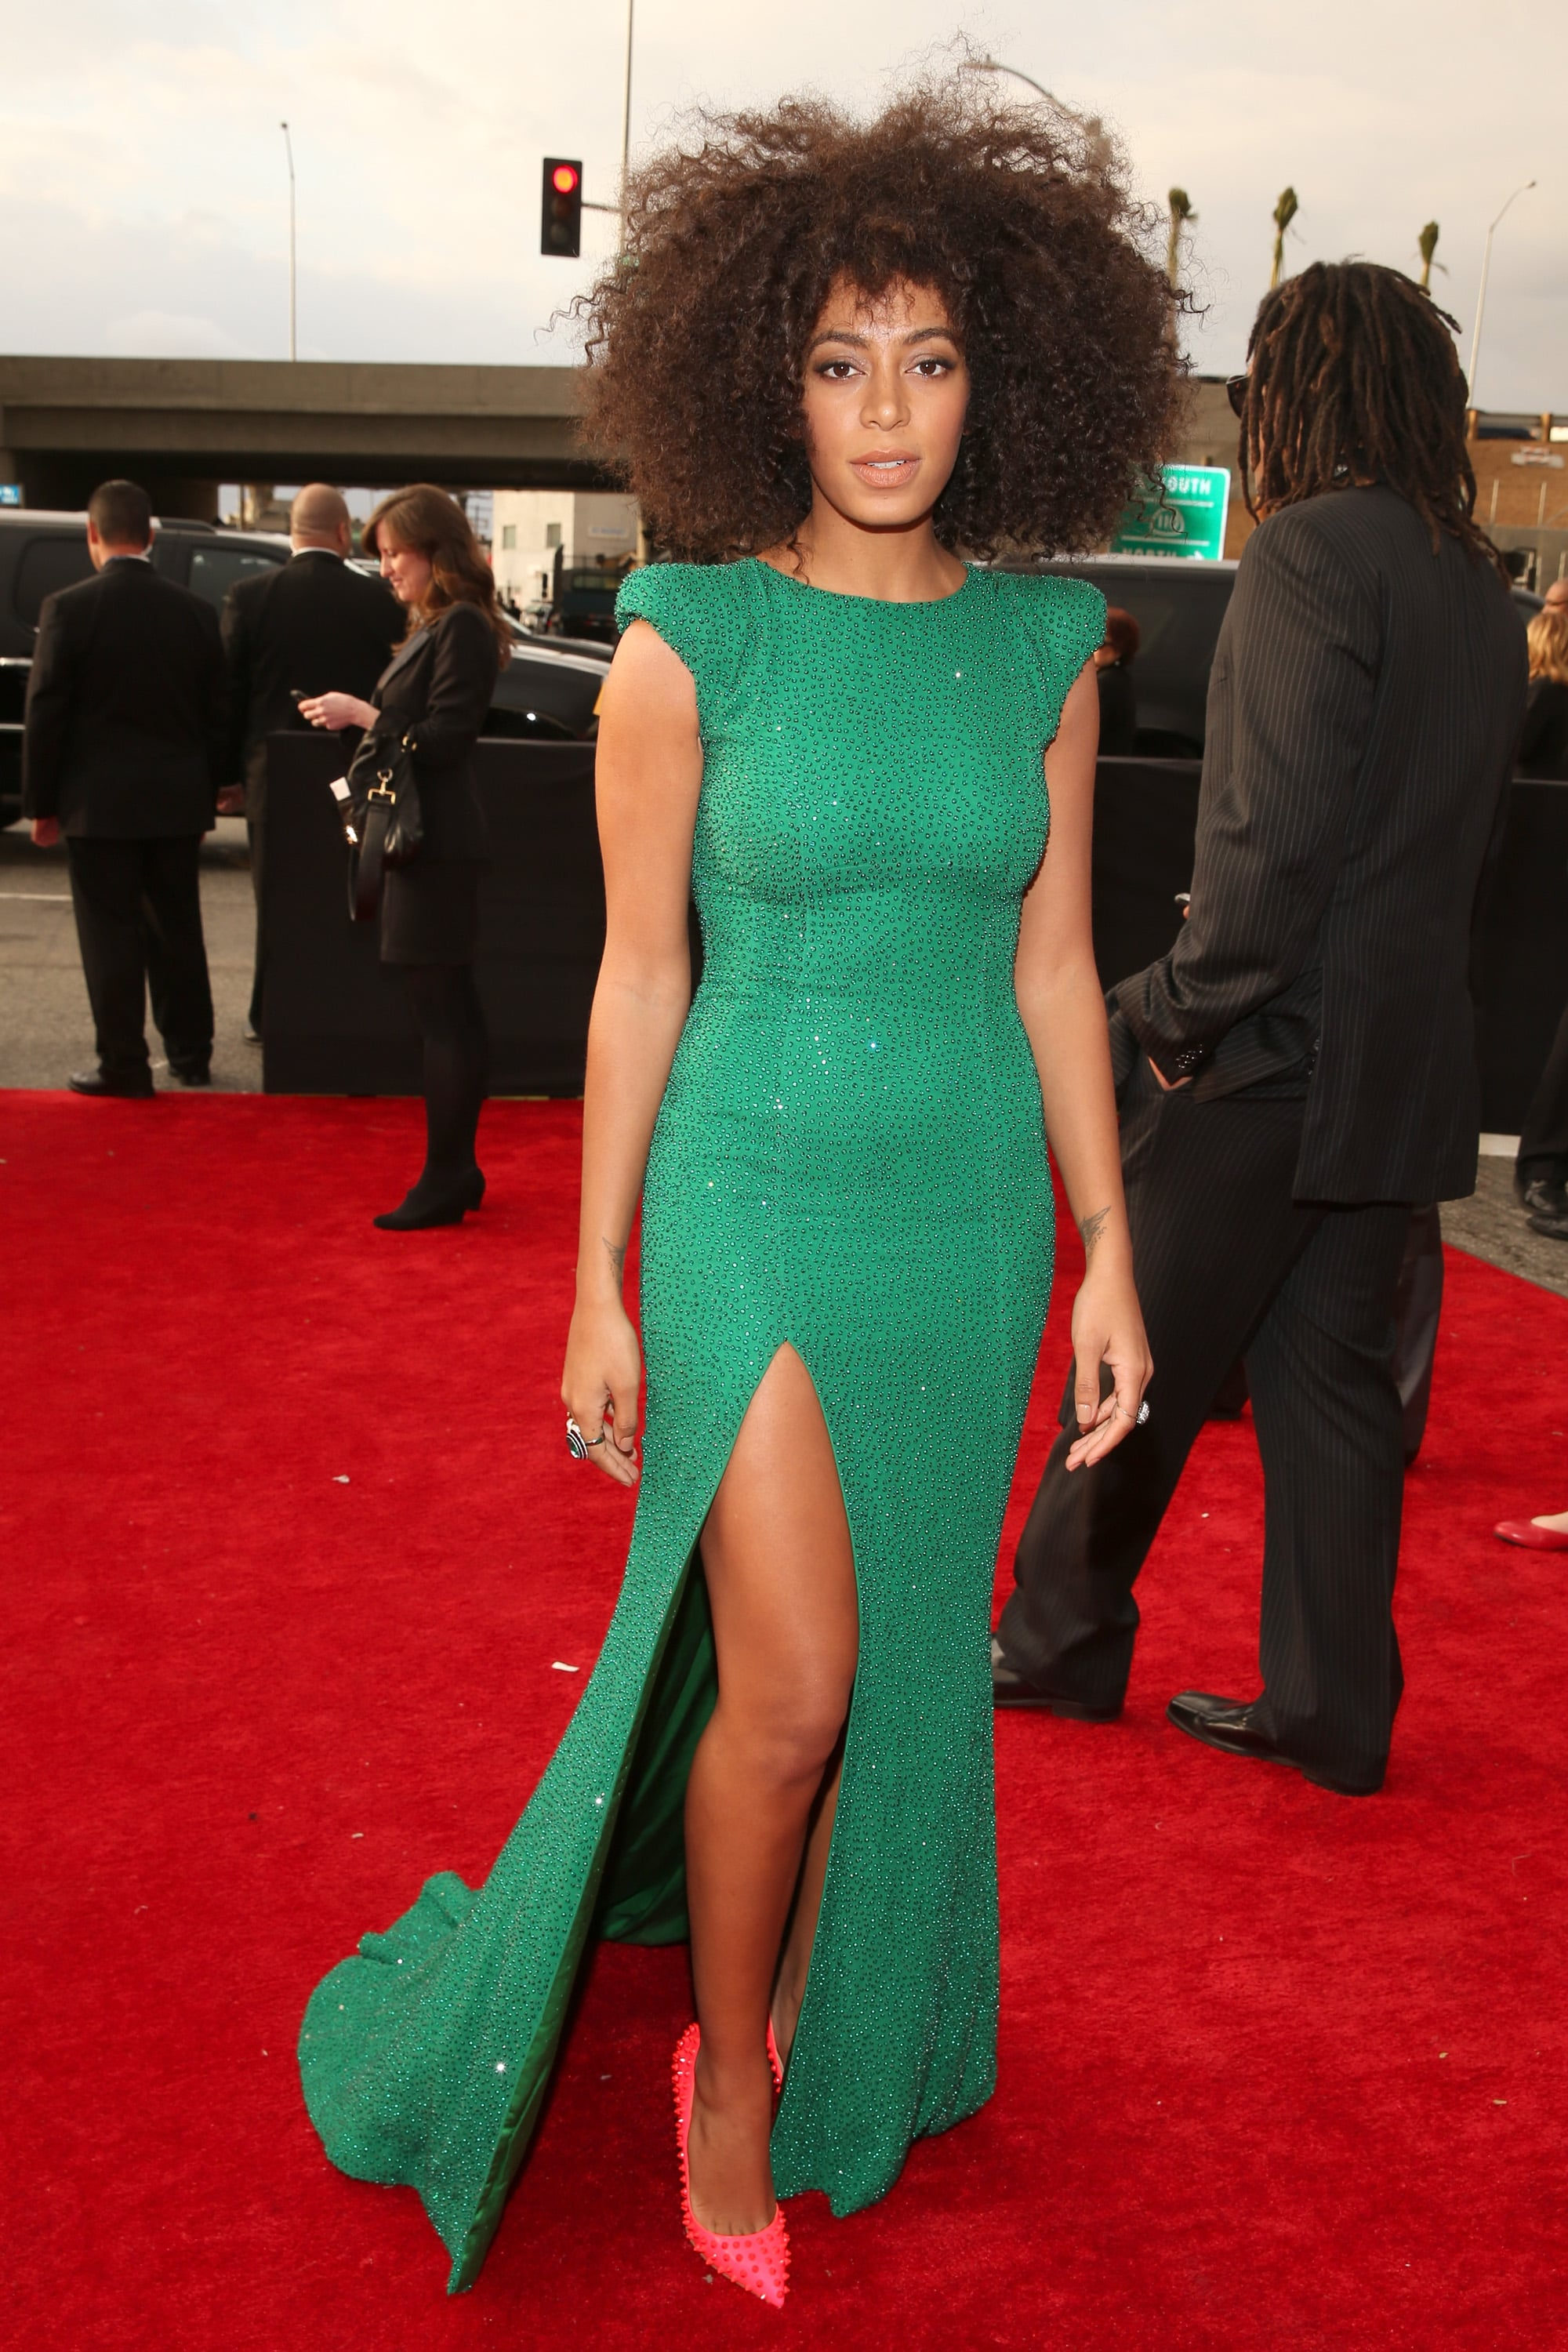 Solange Knowles showed off her leg in a green gown with a high slit for the Grammys.